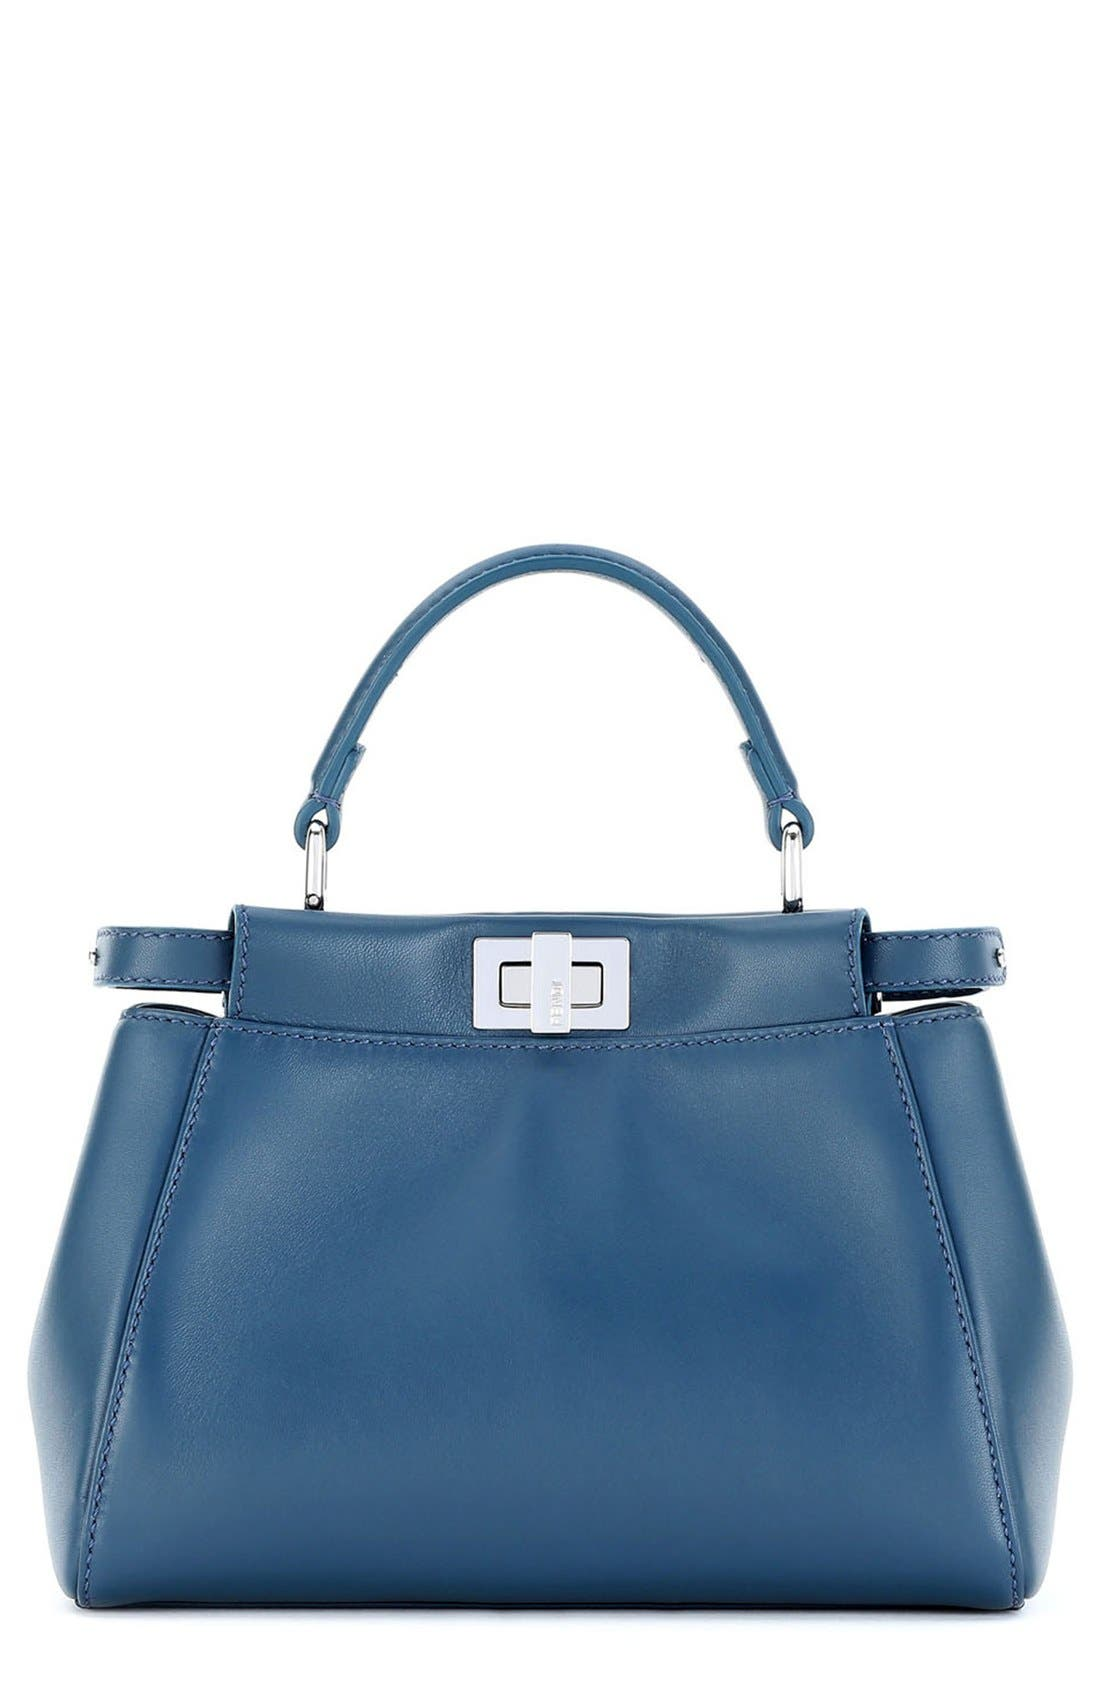 Fendi 'Mini Peekaboo' Nappa Leather Bag